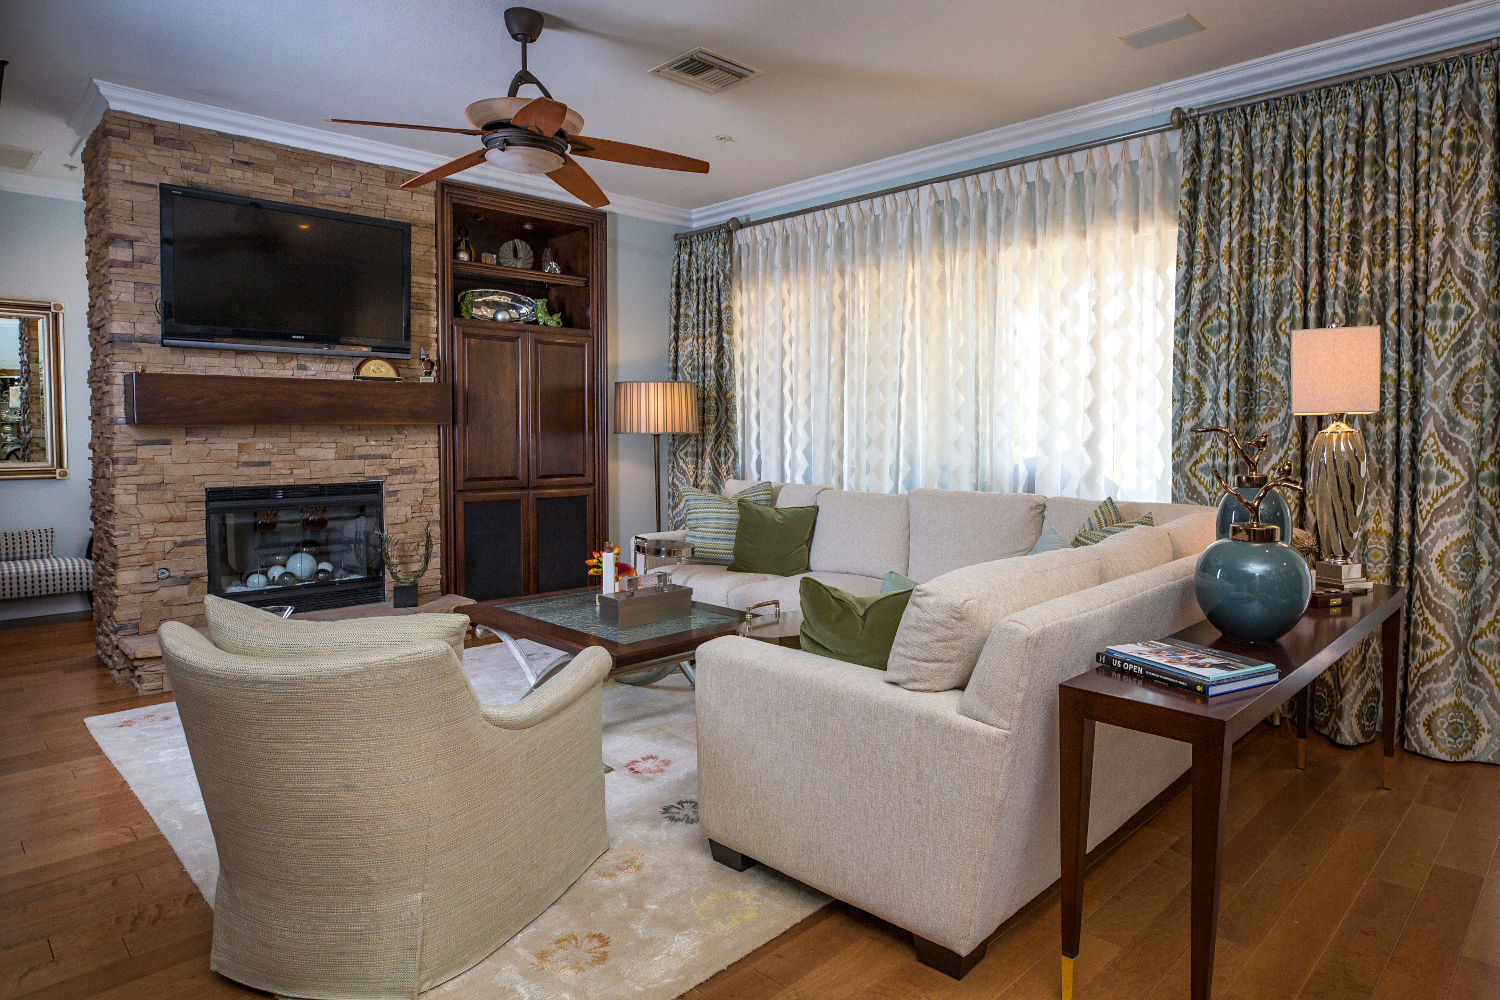 Bright, traditionally styled family room, stacked stone fireplace with wood mantel.